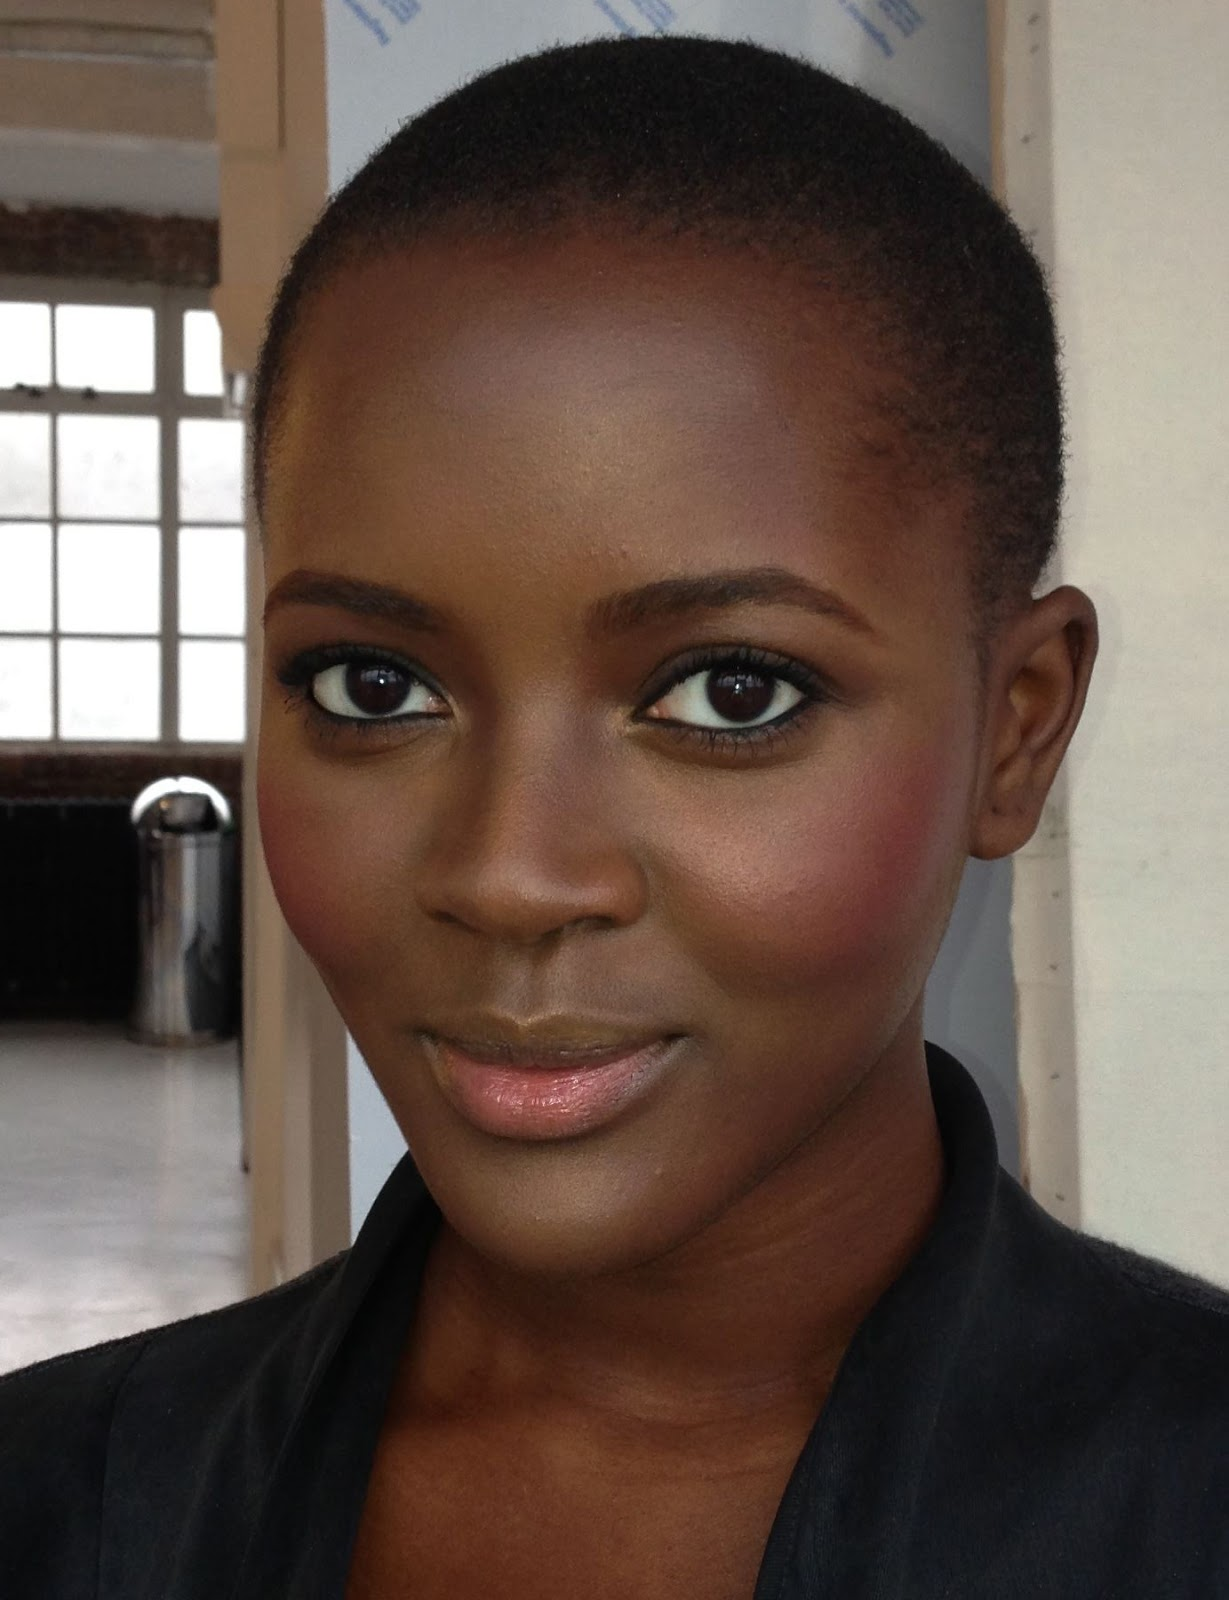 Simple Make Up For Dark Skin Stylpinch Beauty Arena